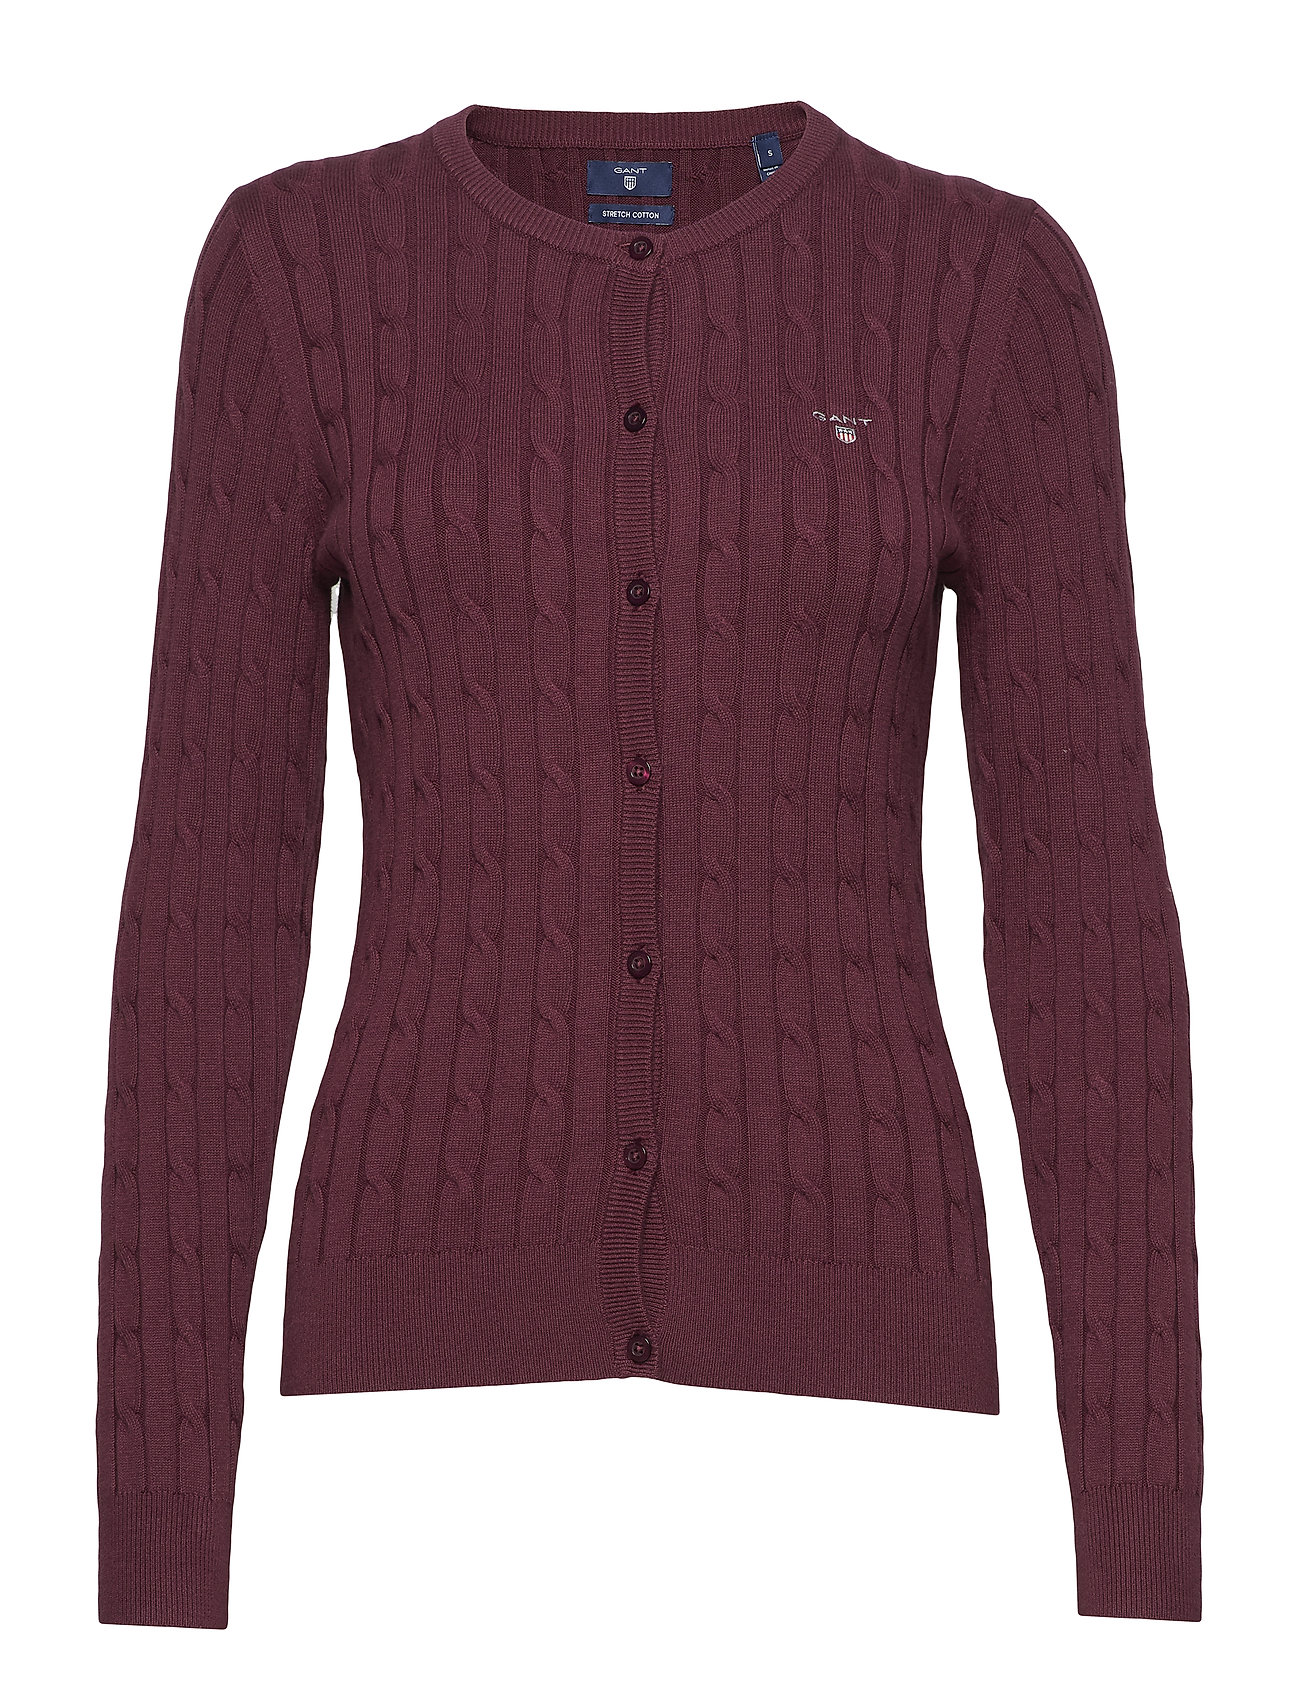 GANT Stretch Cotton Cable Crew Cardigan (Purple Fig) 1747ecb564e9